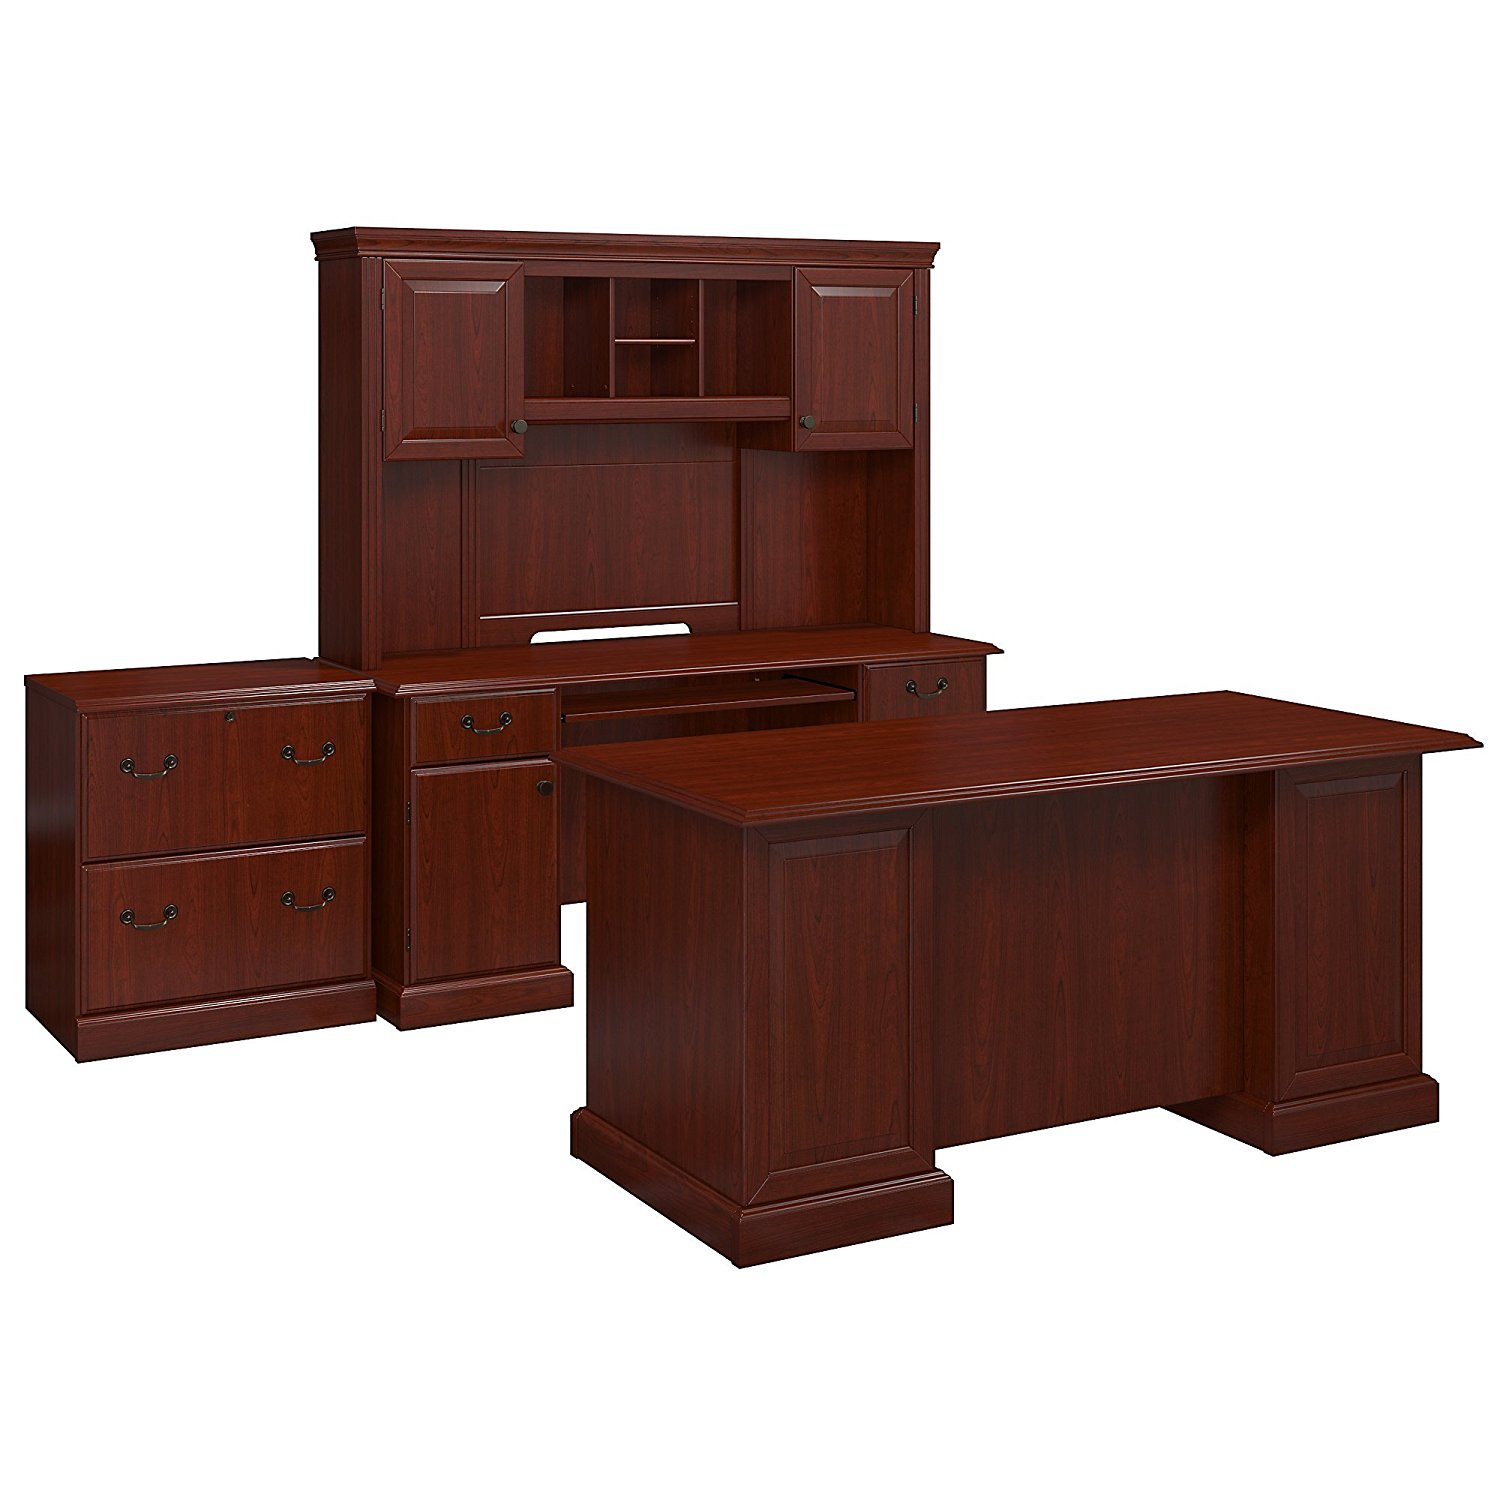 kathy ireland Office by Bush Business Furniture Bennington Manager's Desk, Credenza with Hutch and Lateral File in Harvest Cherry